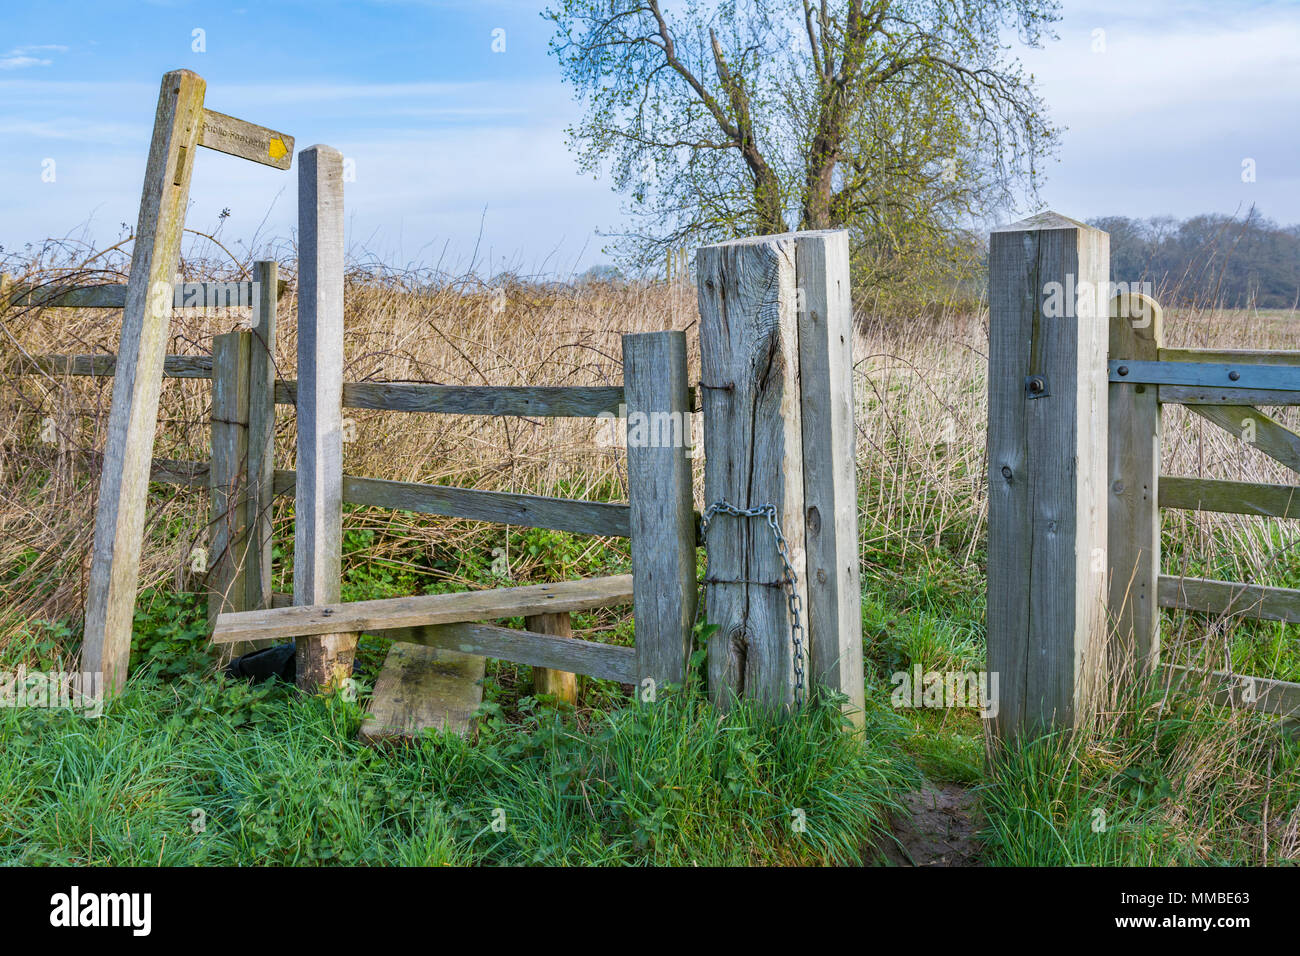 Wooden stile into a field on a public footpath in West Sussex, England, UK. - Stock Image